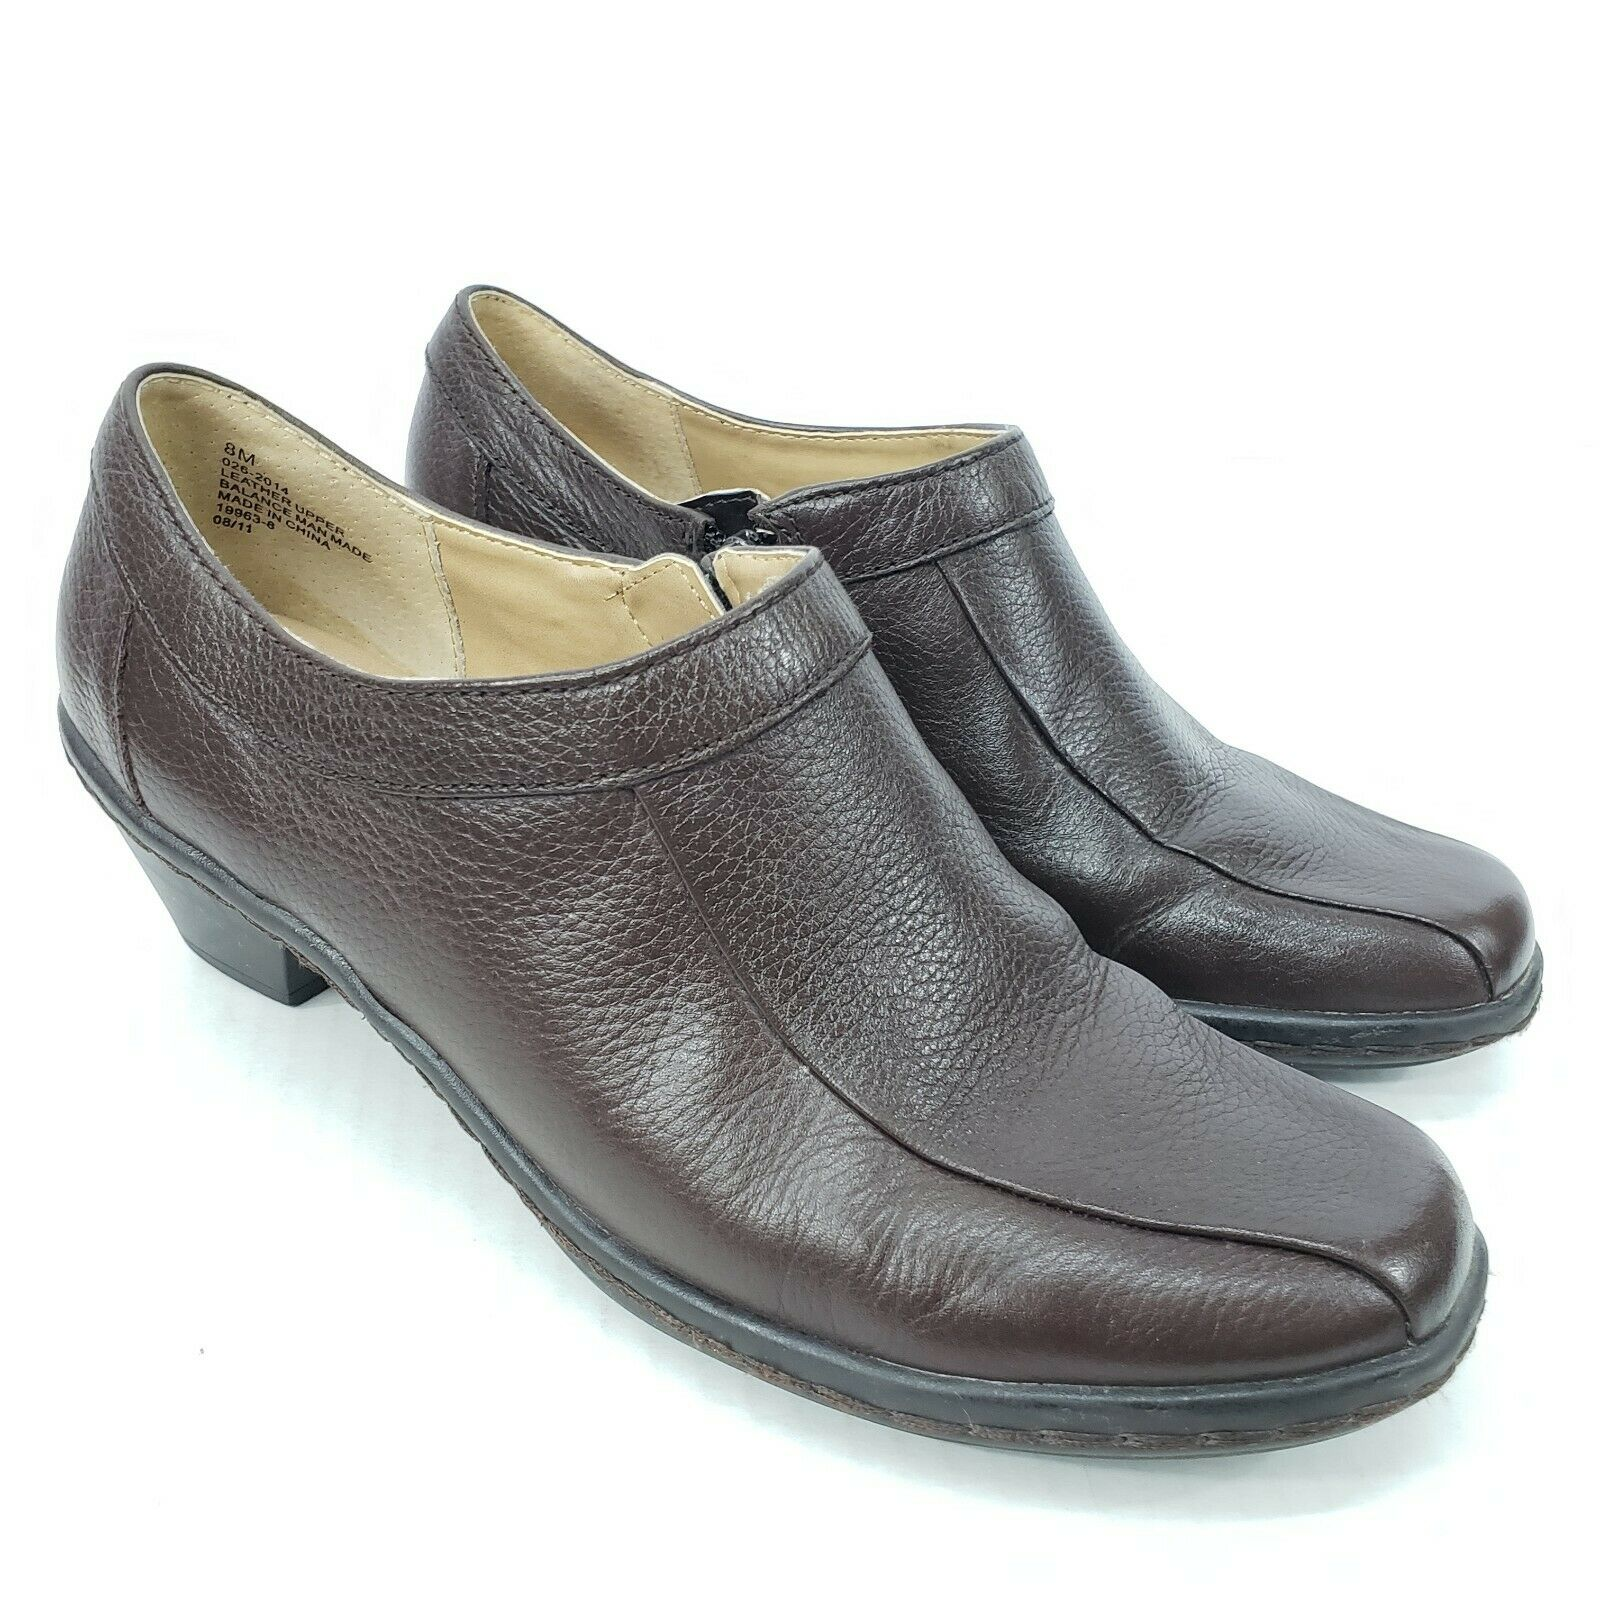 Strictly Comfort Women's Clogs Size 8M Brown Side Zipper Slip On Leather